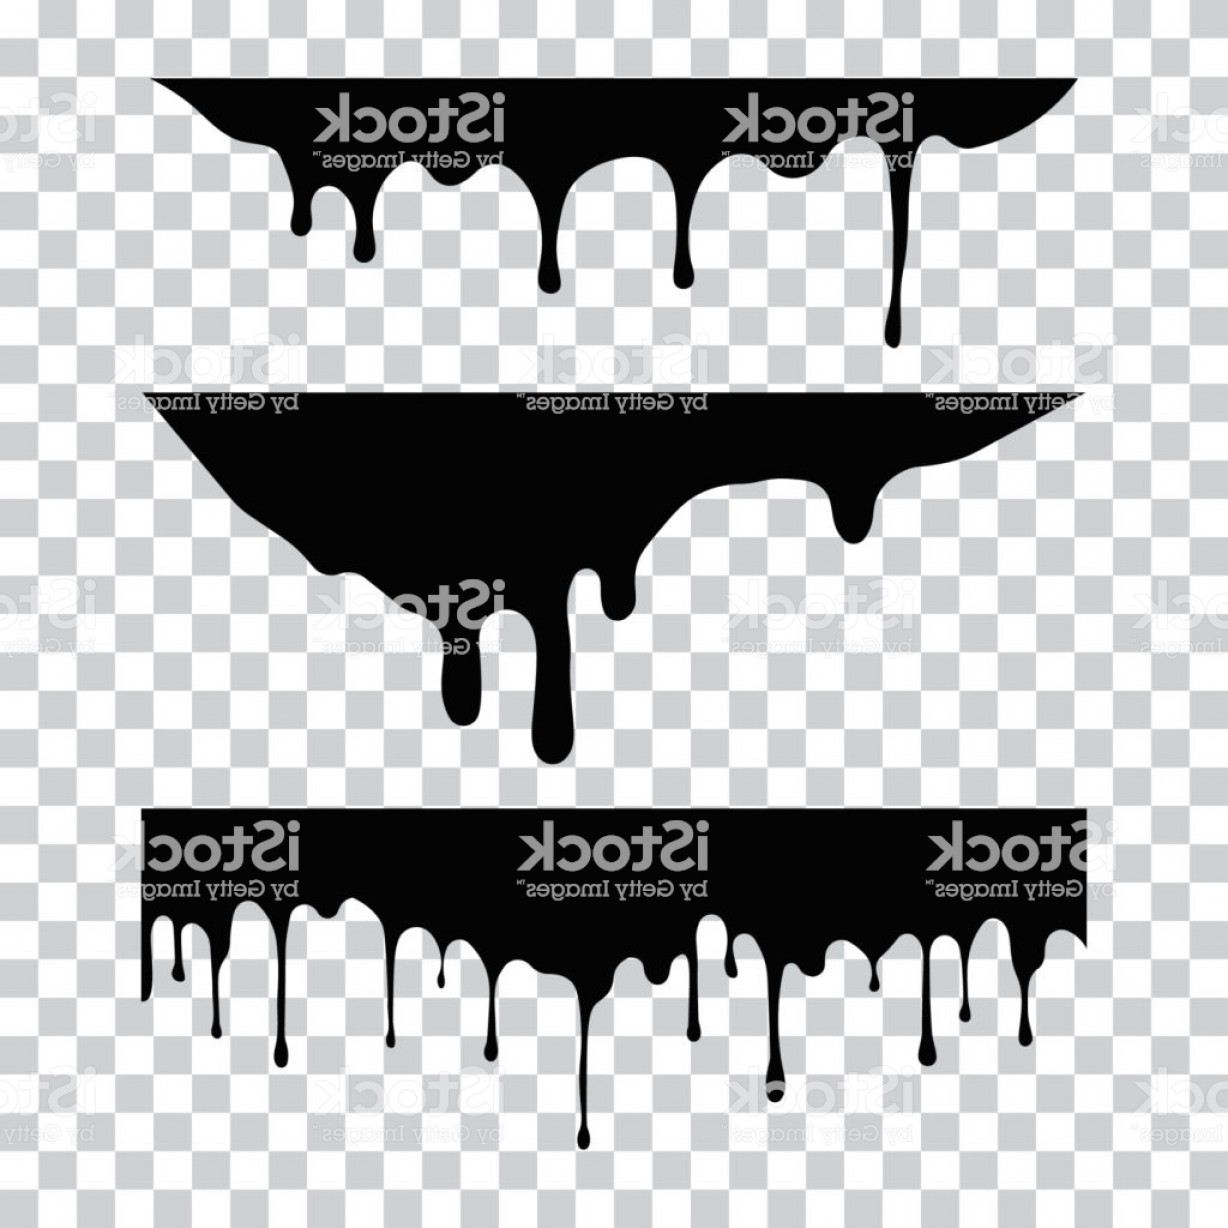 Dripping Paint Vector Illustration: Current Paint Stains Current Drops Current Inks Paint Dripping Dripping Liquid Gm